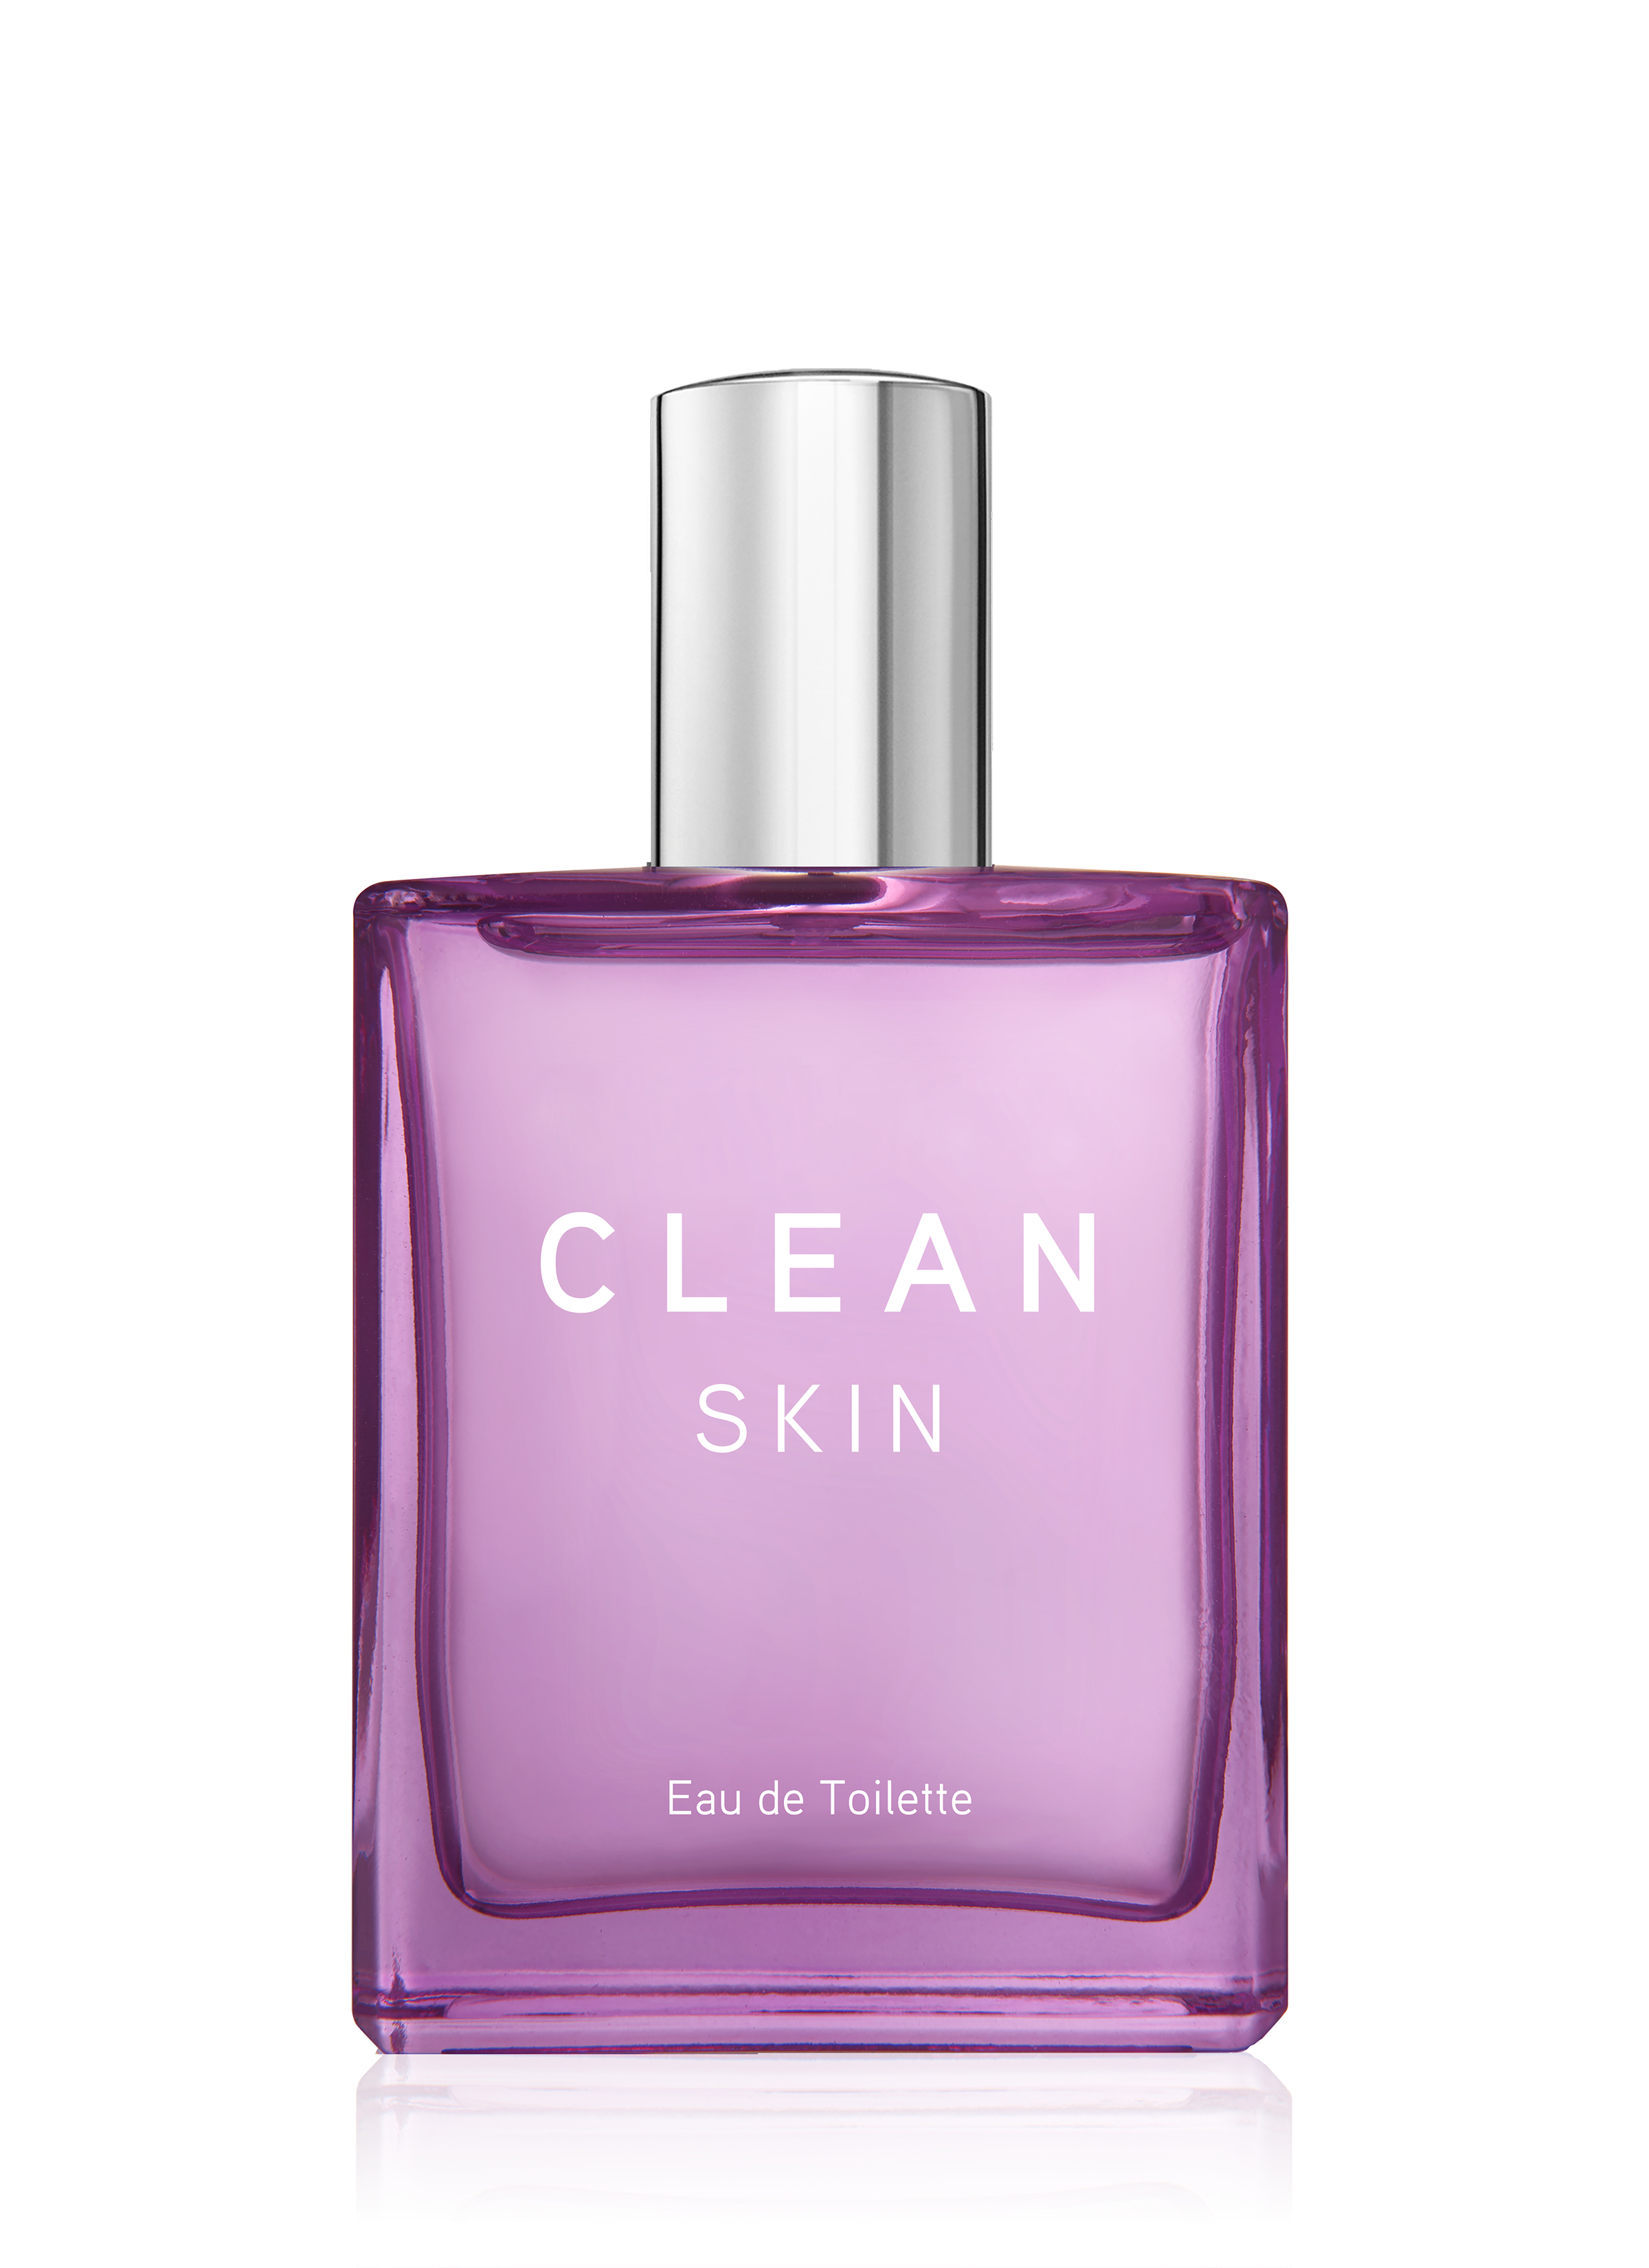 EDT_SKIN_BOTTLE_122117.jpg